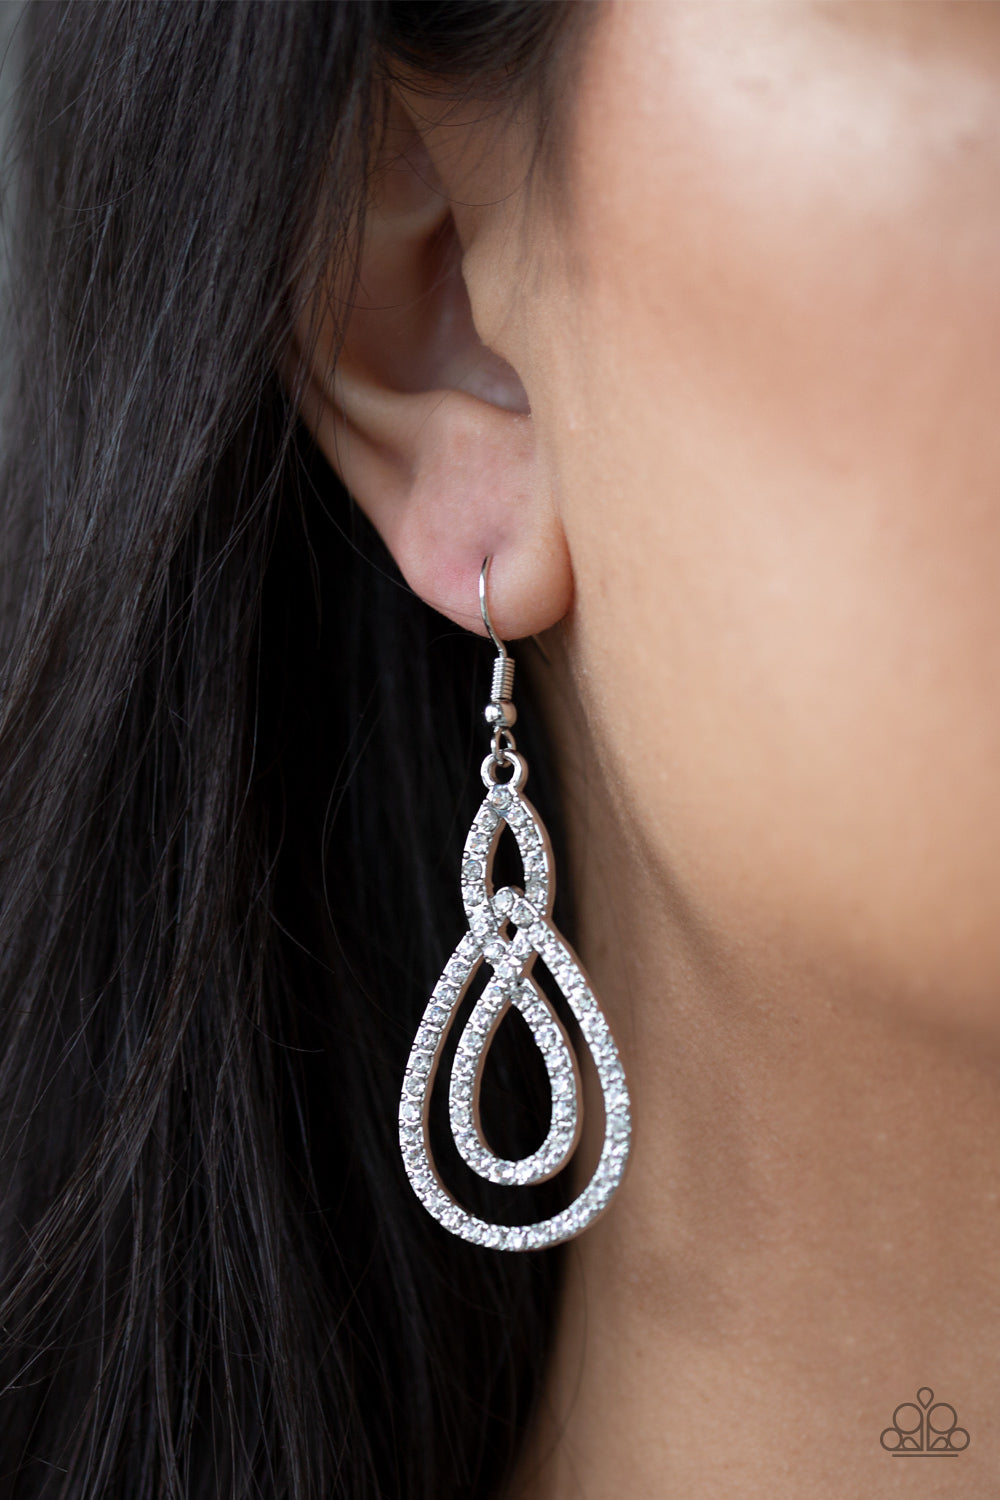 Sassy Sophistication - Silver Rhinestones Loop Paparazzi Jewelry Earrings paparazzi accessories jewelry Earrings